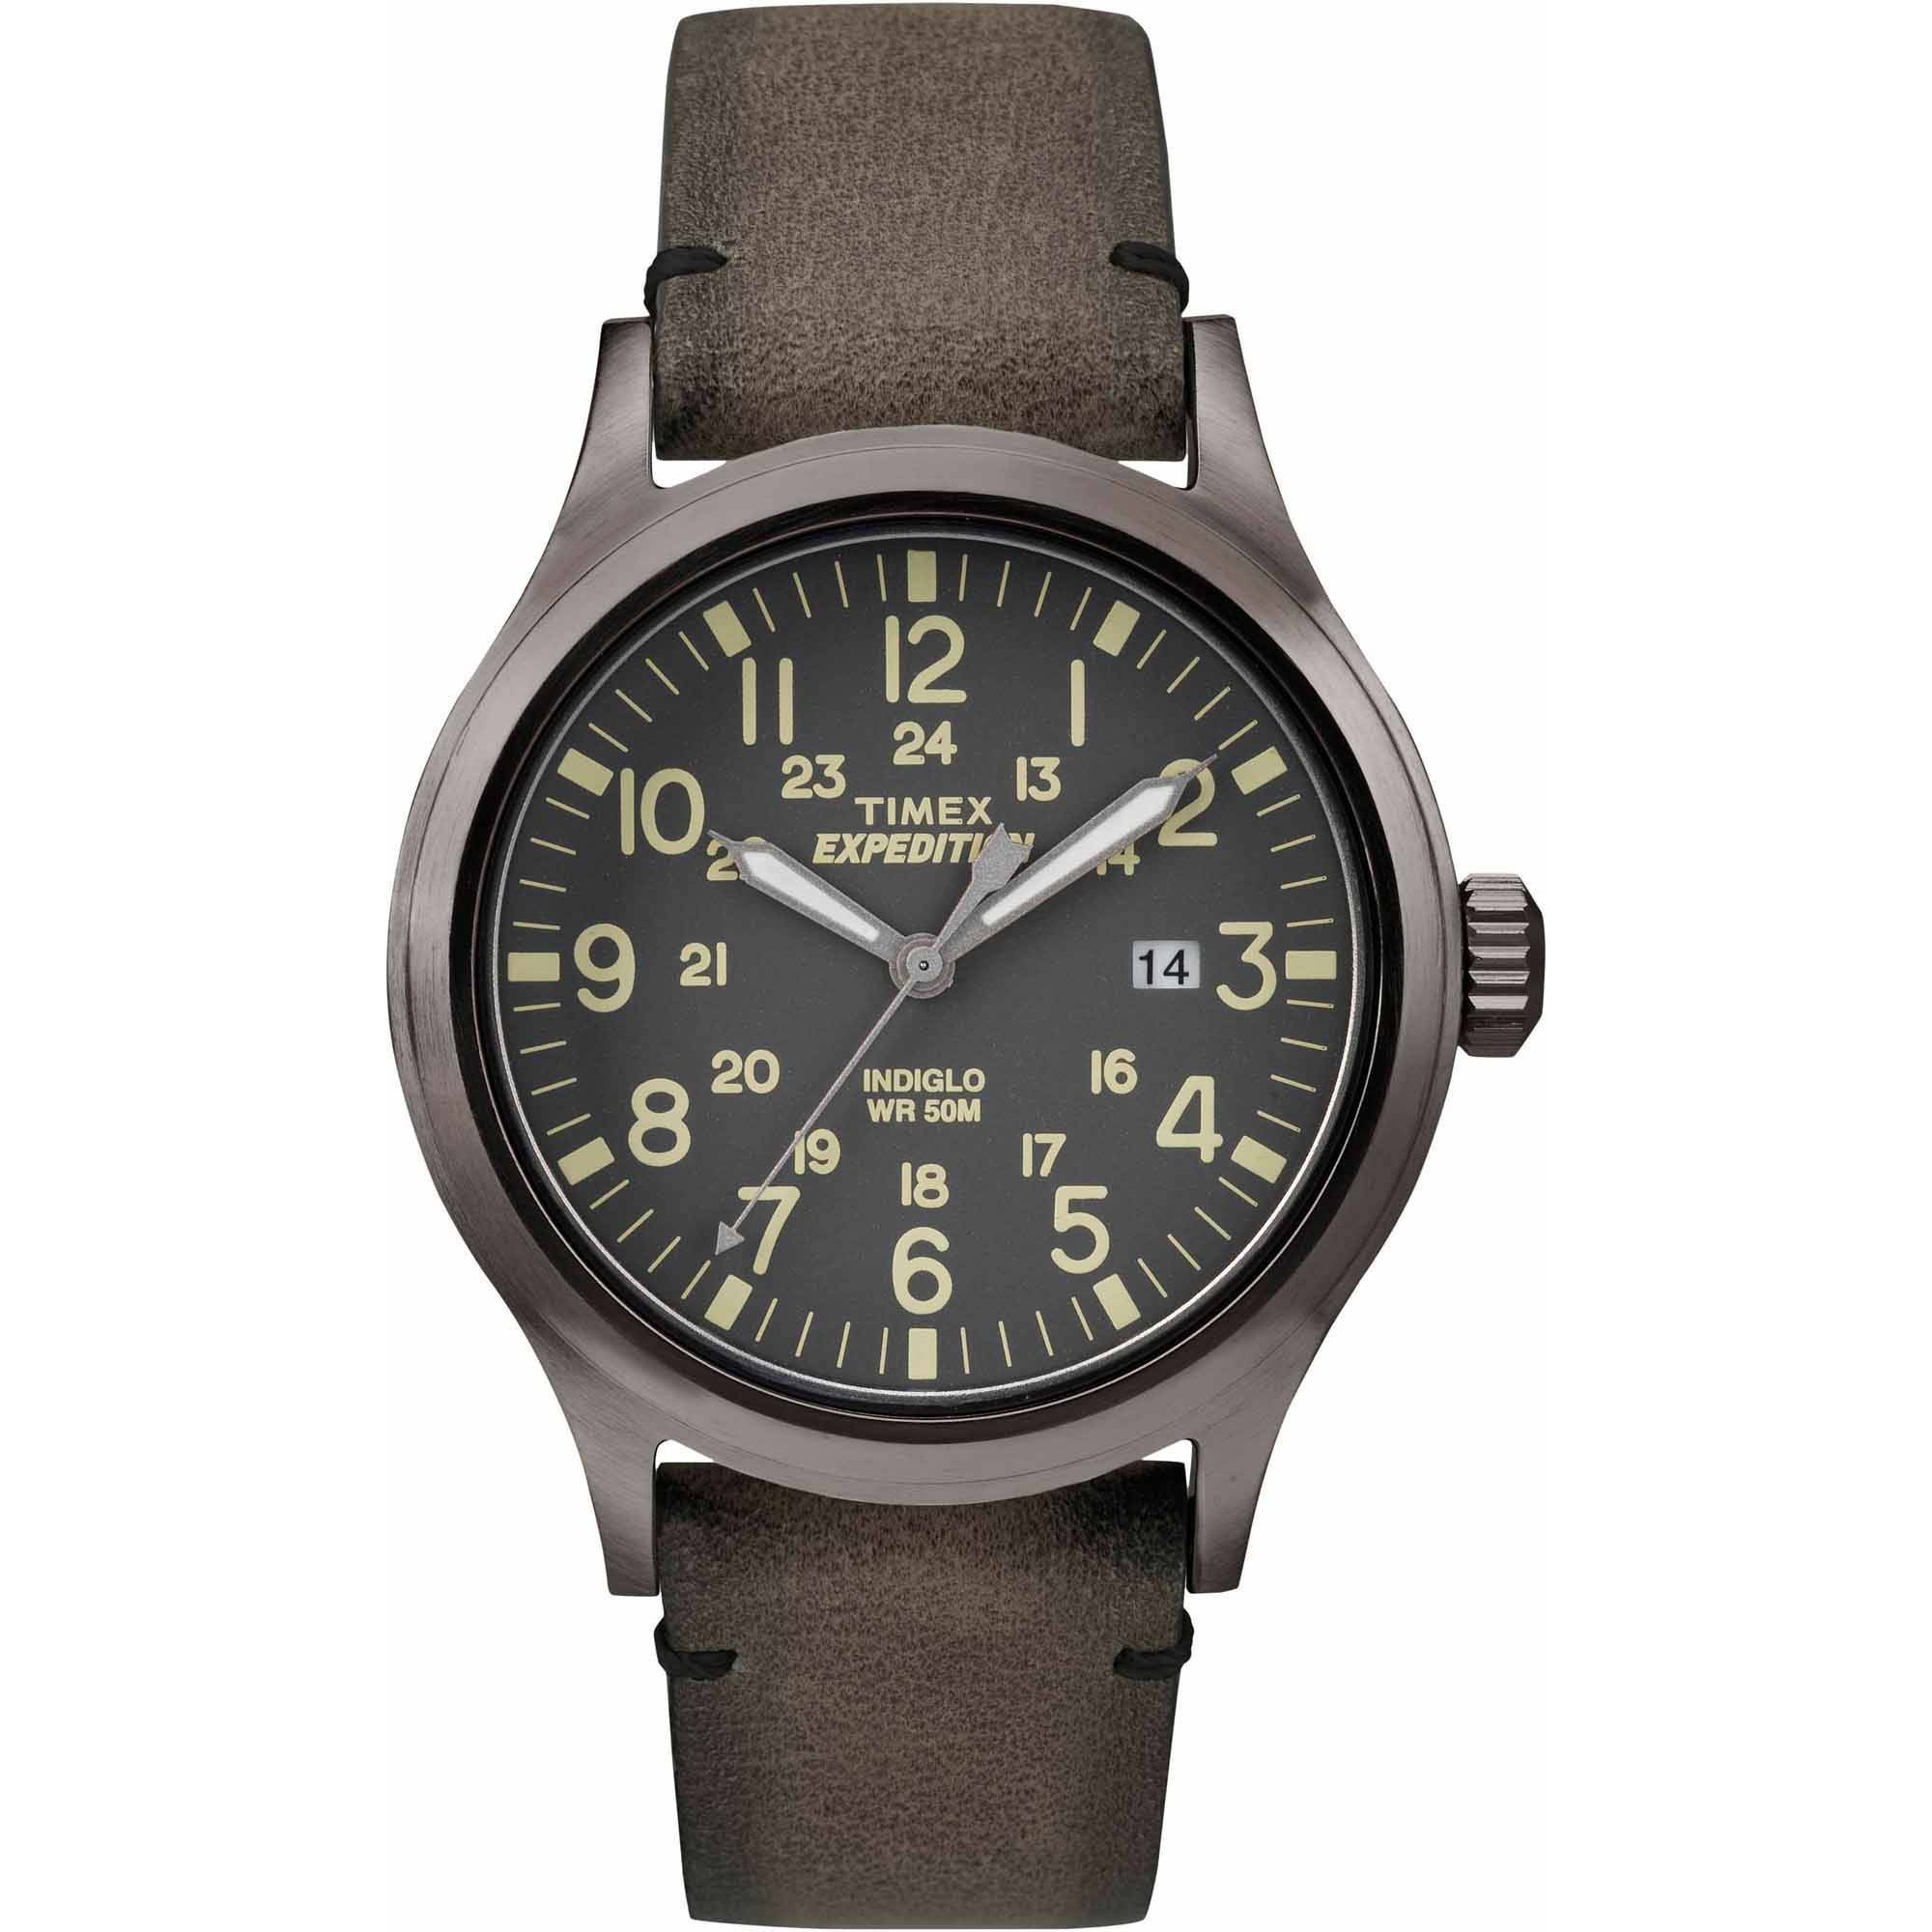 Timex Men's Expedition Scout Watch, Brown Leather Strap by Timex